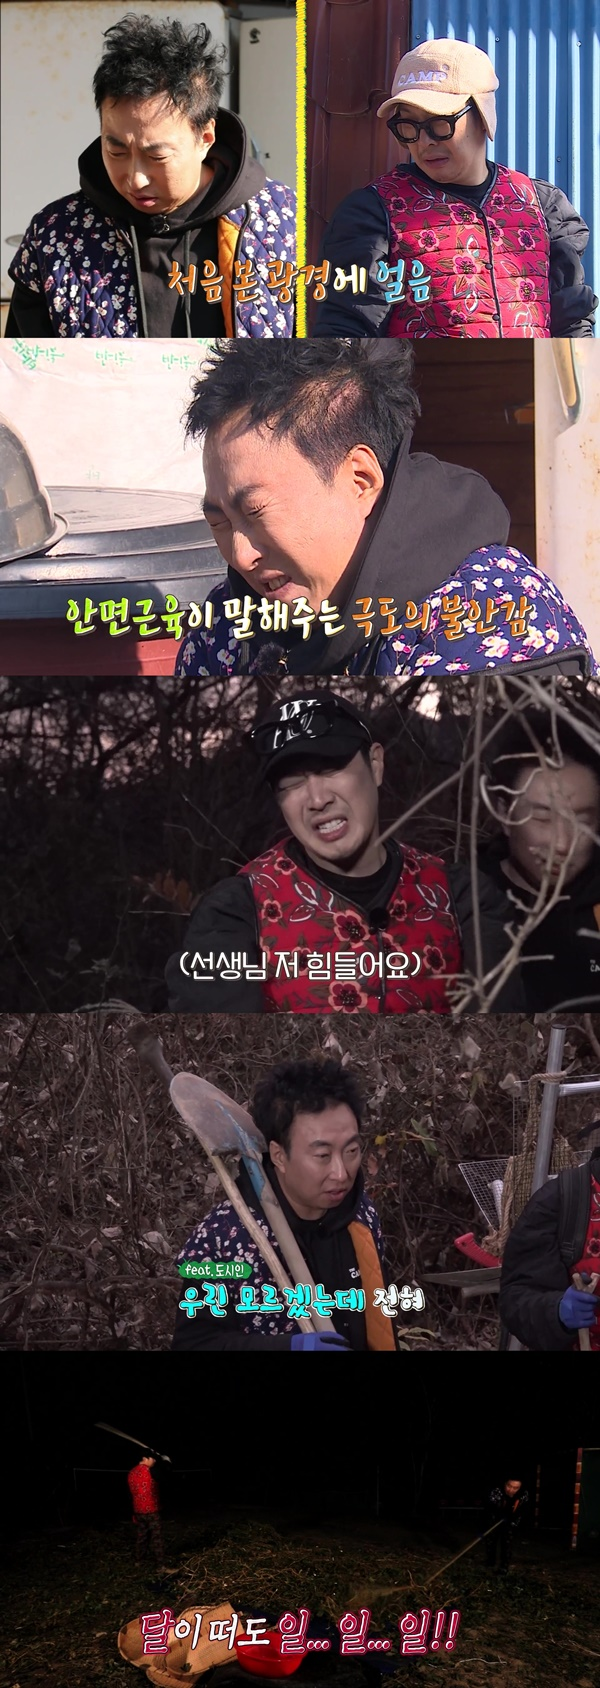 """'If You Don't Fight' Park Myung-soo X Haha, """"I'm going crazy"""" for natural people"""